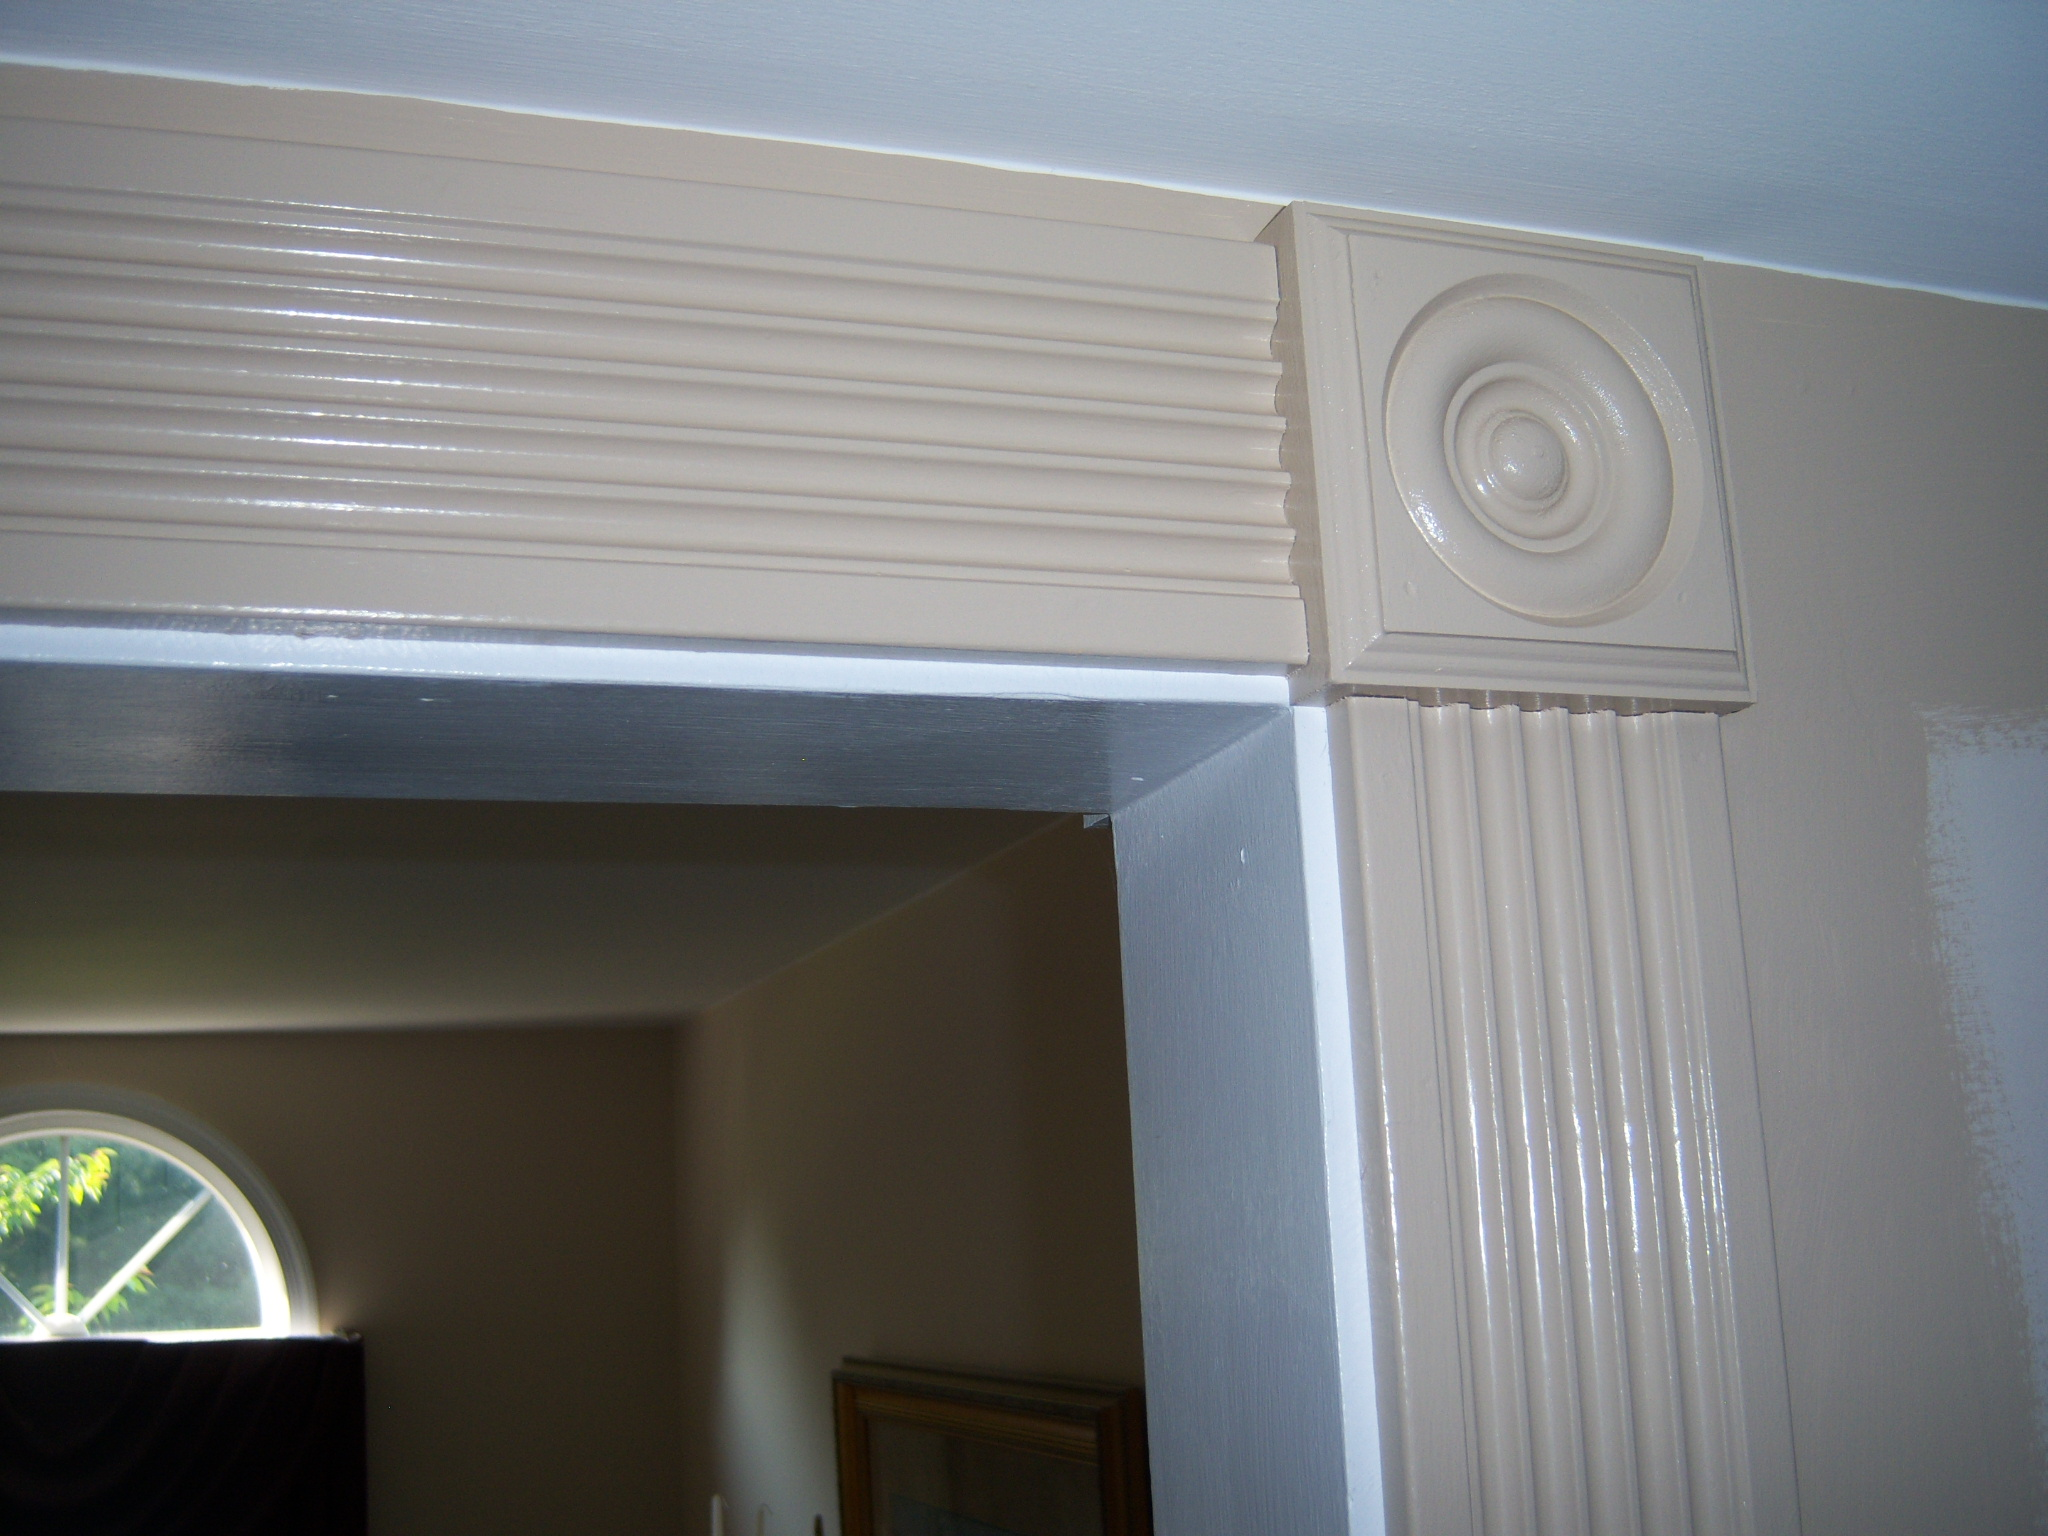 Fluted Casing and Rosette After Finishing & Dressing Up an Archway with Fluted Casing and Rosettes - All About ...